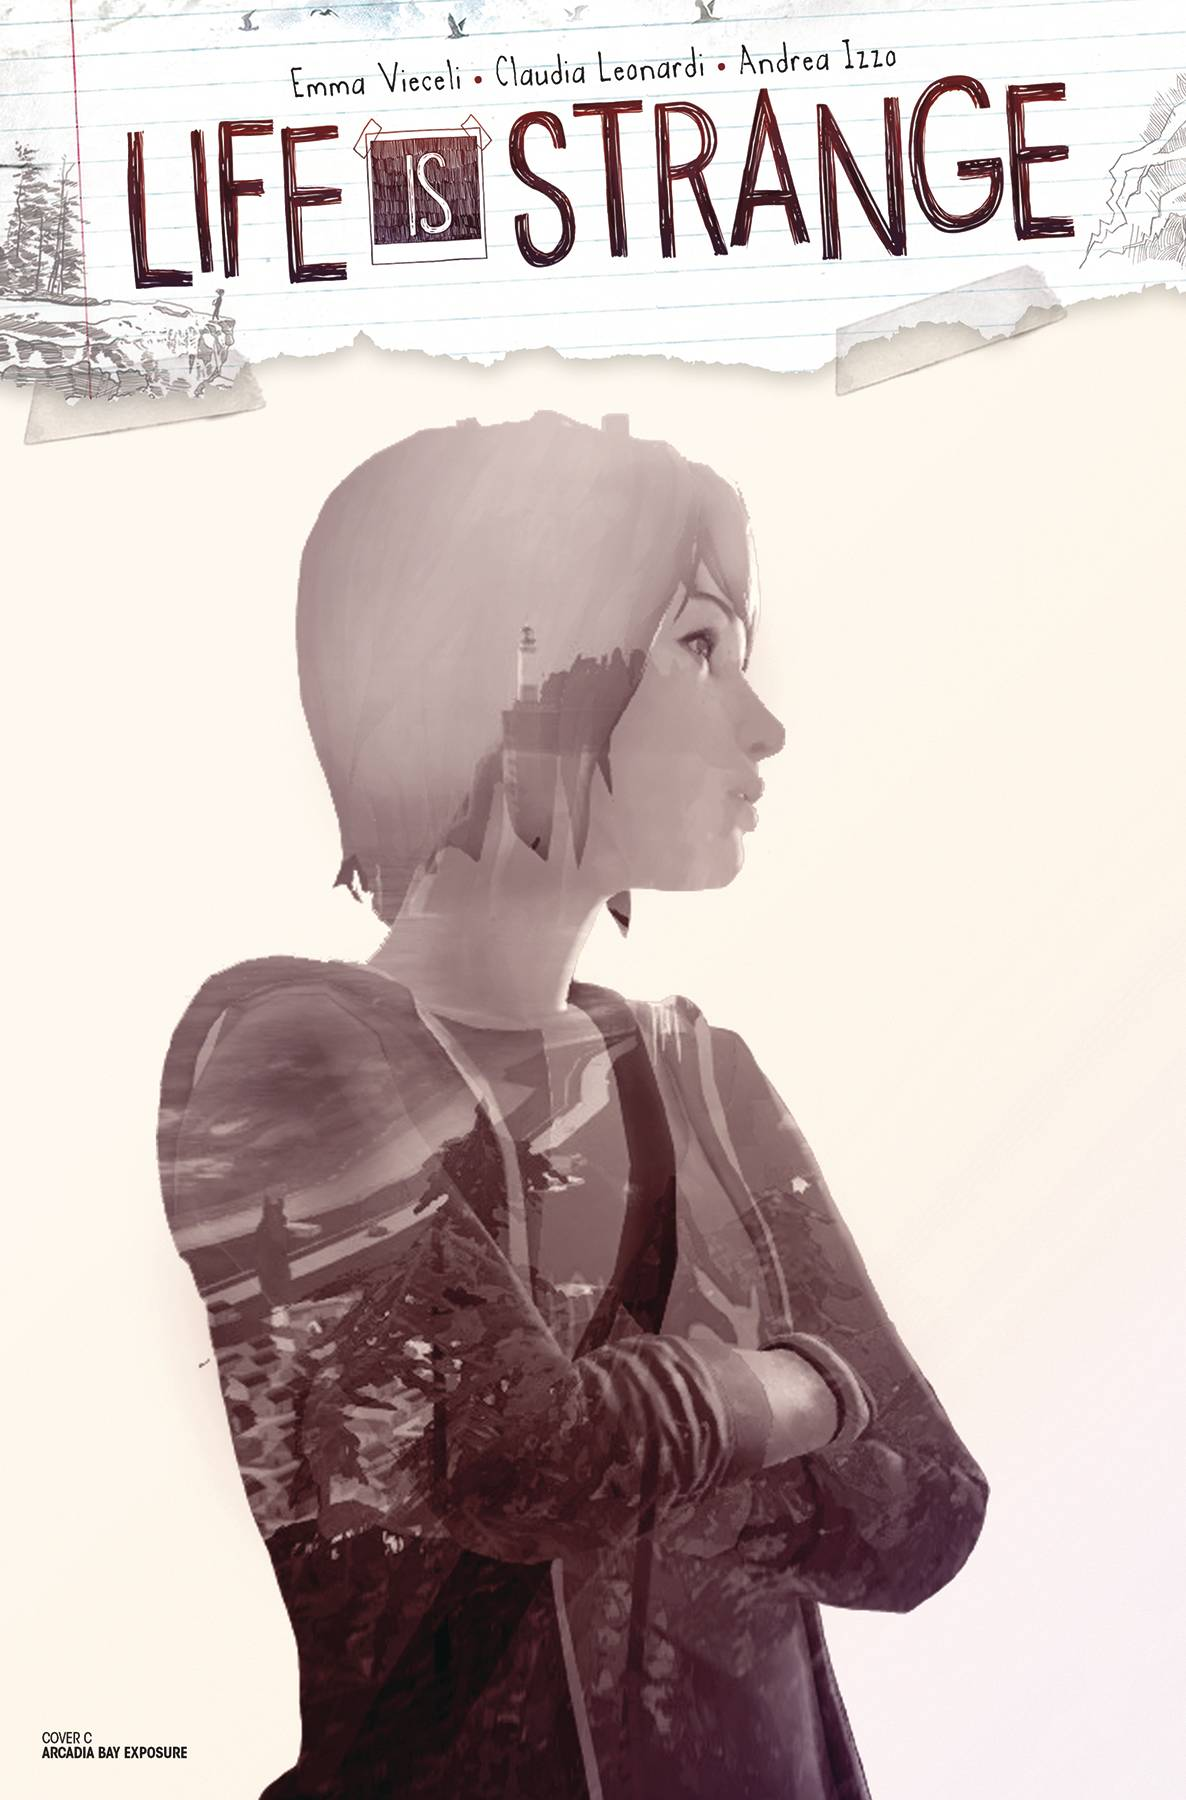 LIFE IS STRANGE 2 CVR C GAME ART.jpg